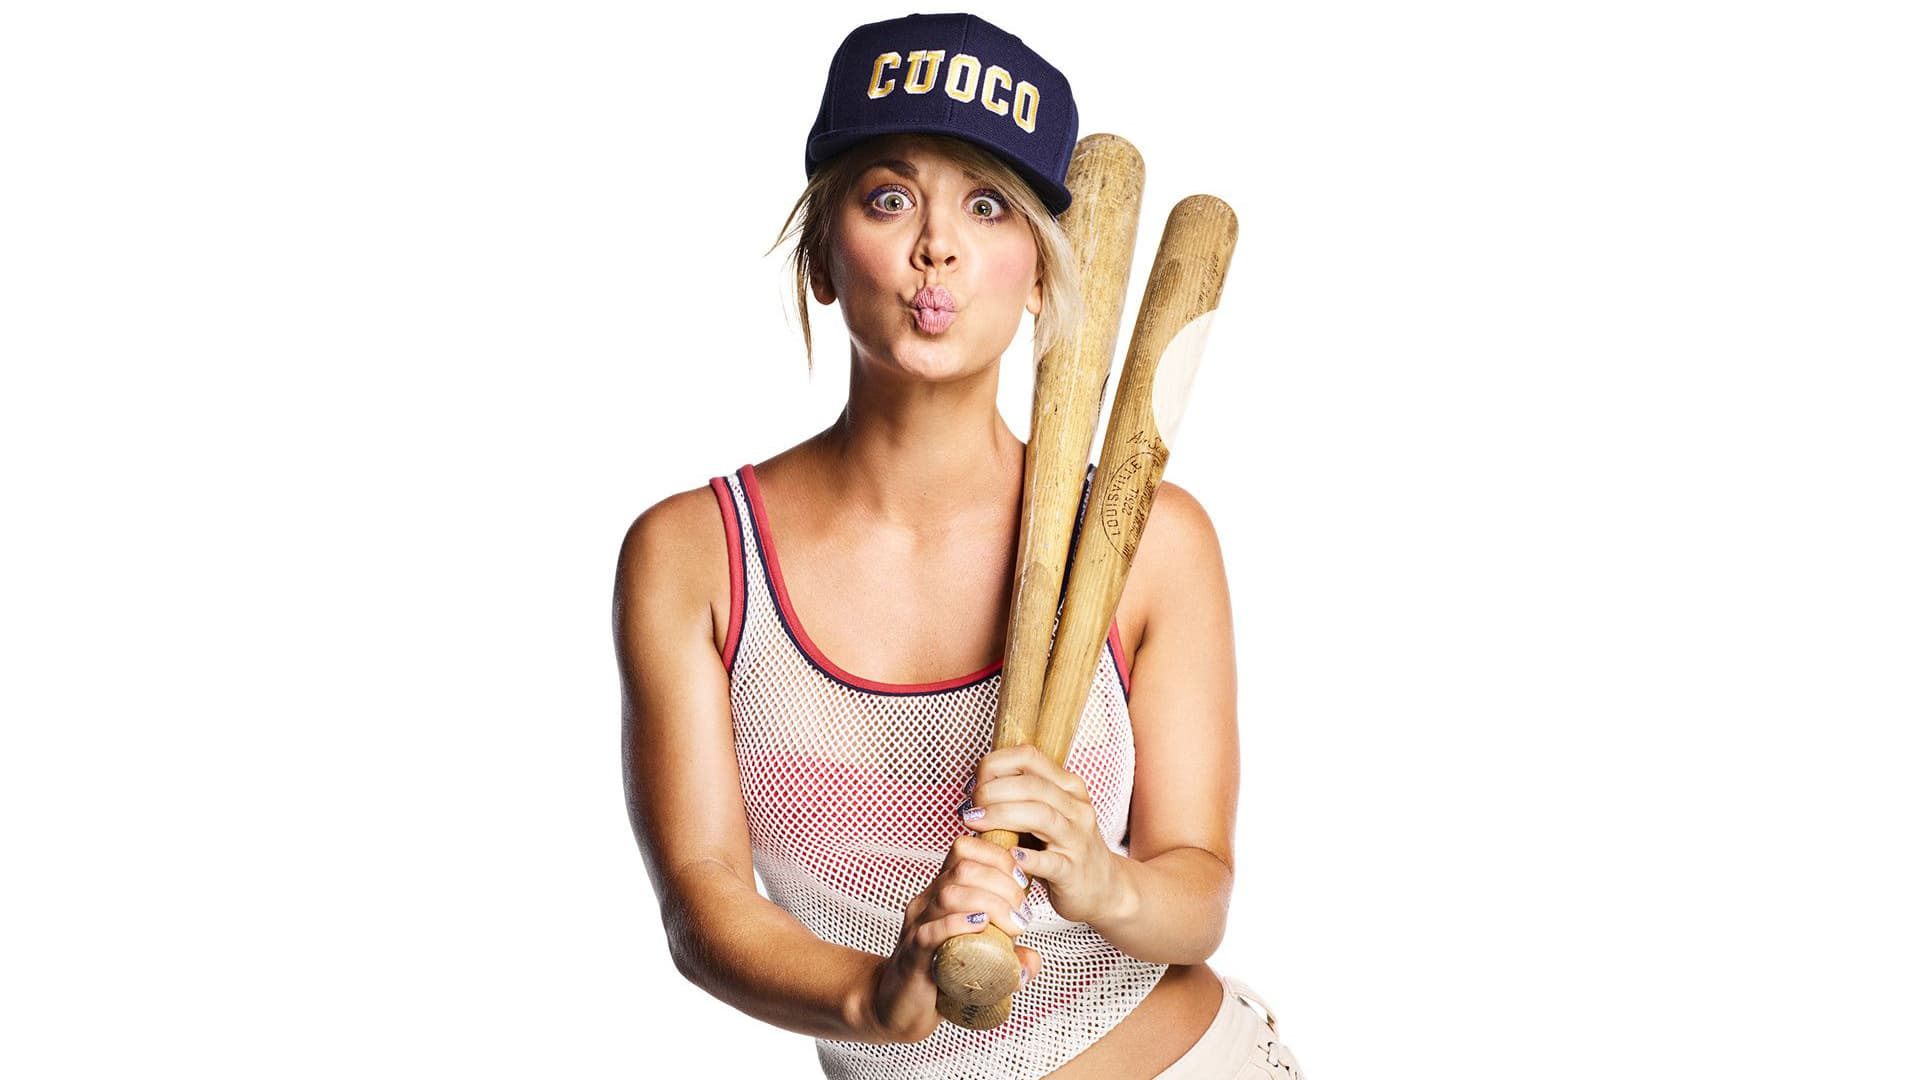 Kaley Cuoco white background HD images